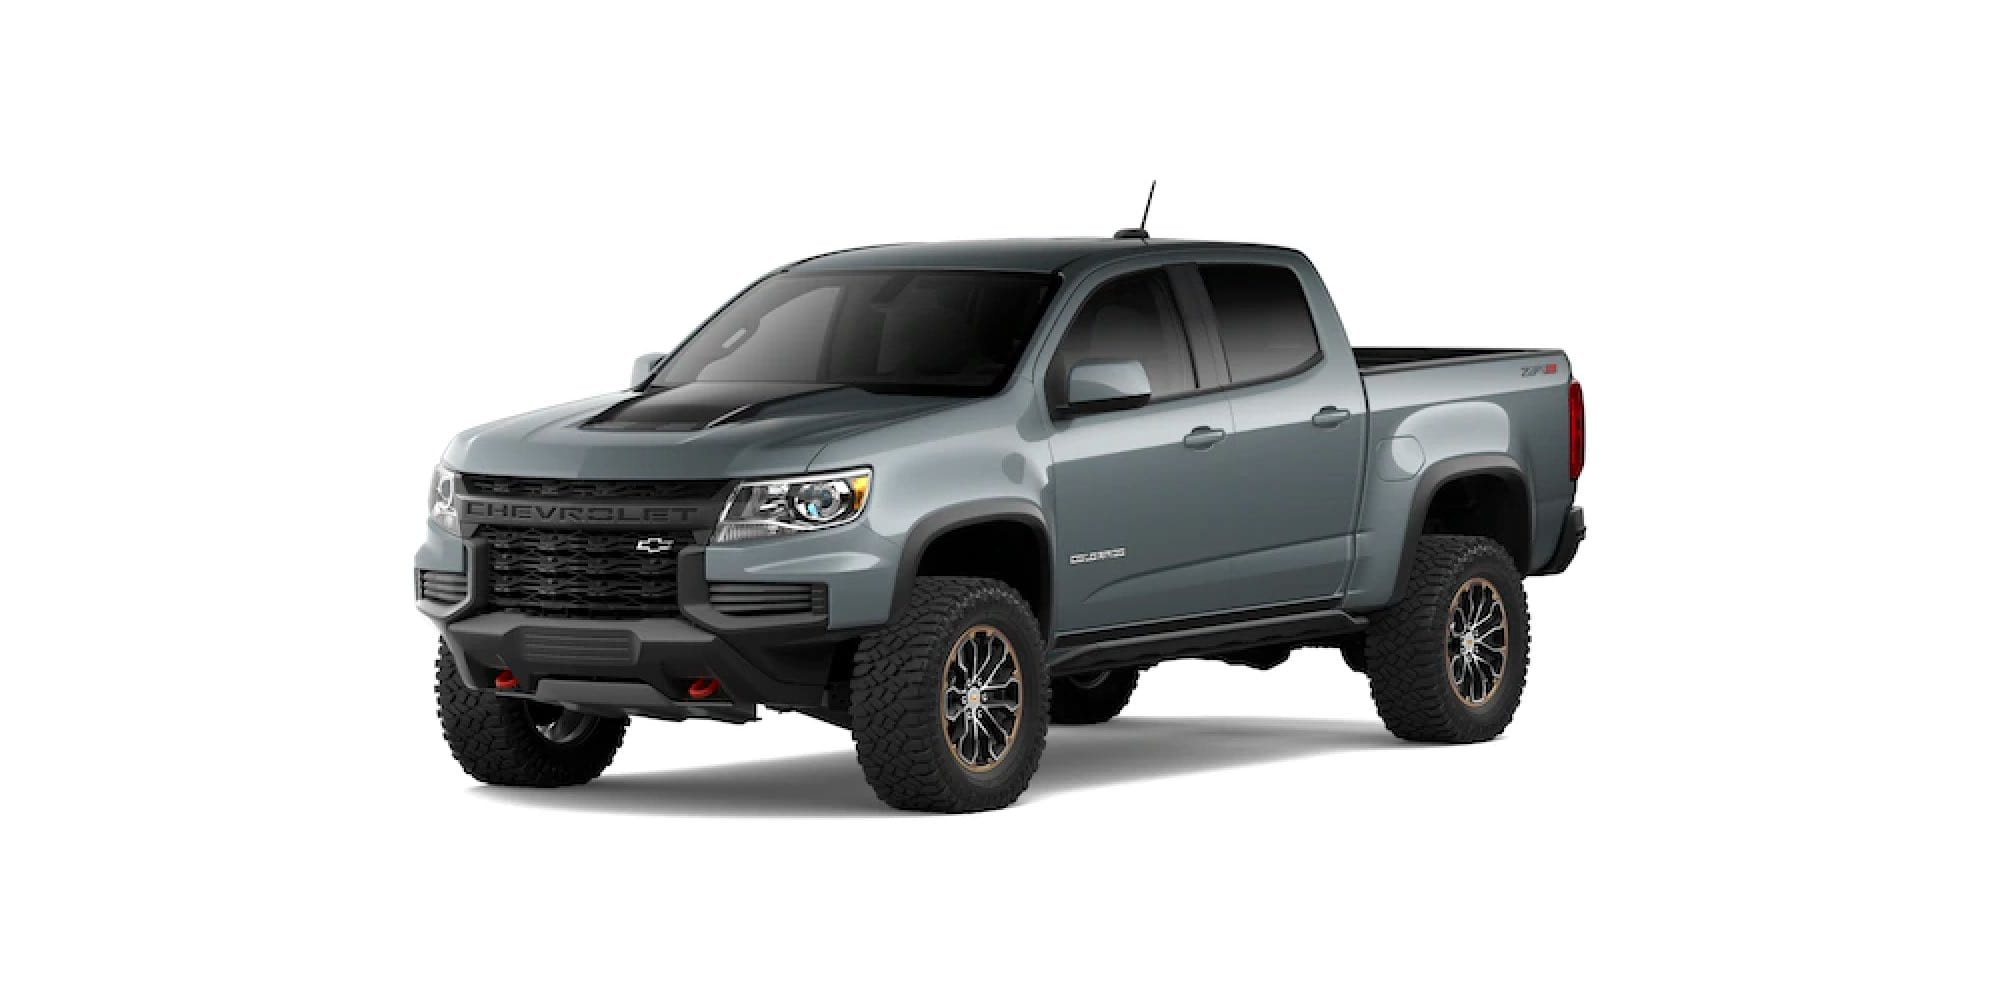 2021 Chevy Colorado in Satin Steel Metallic